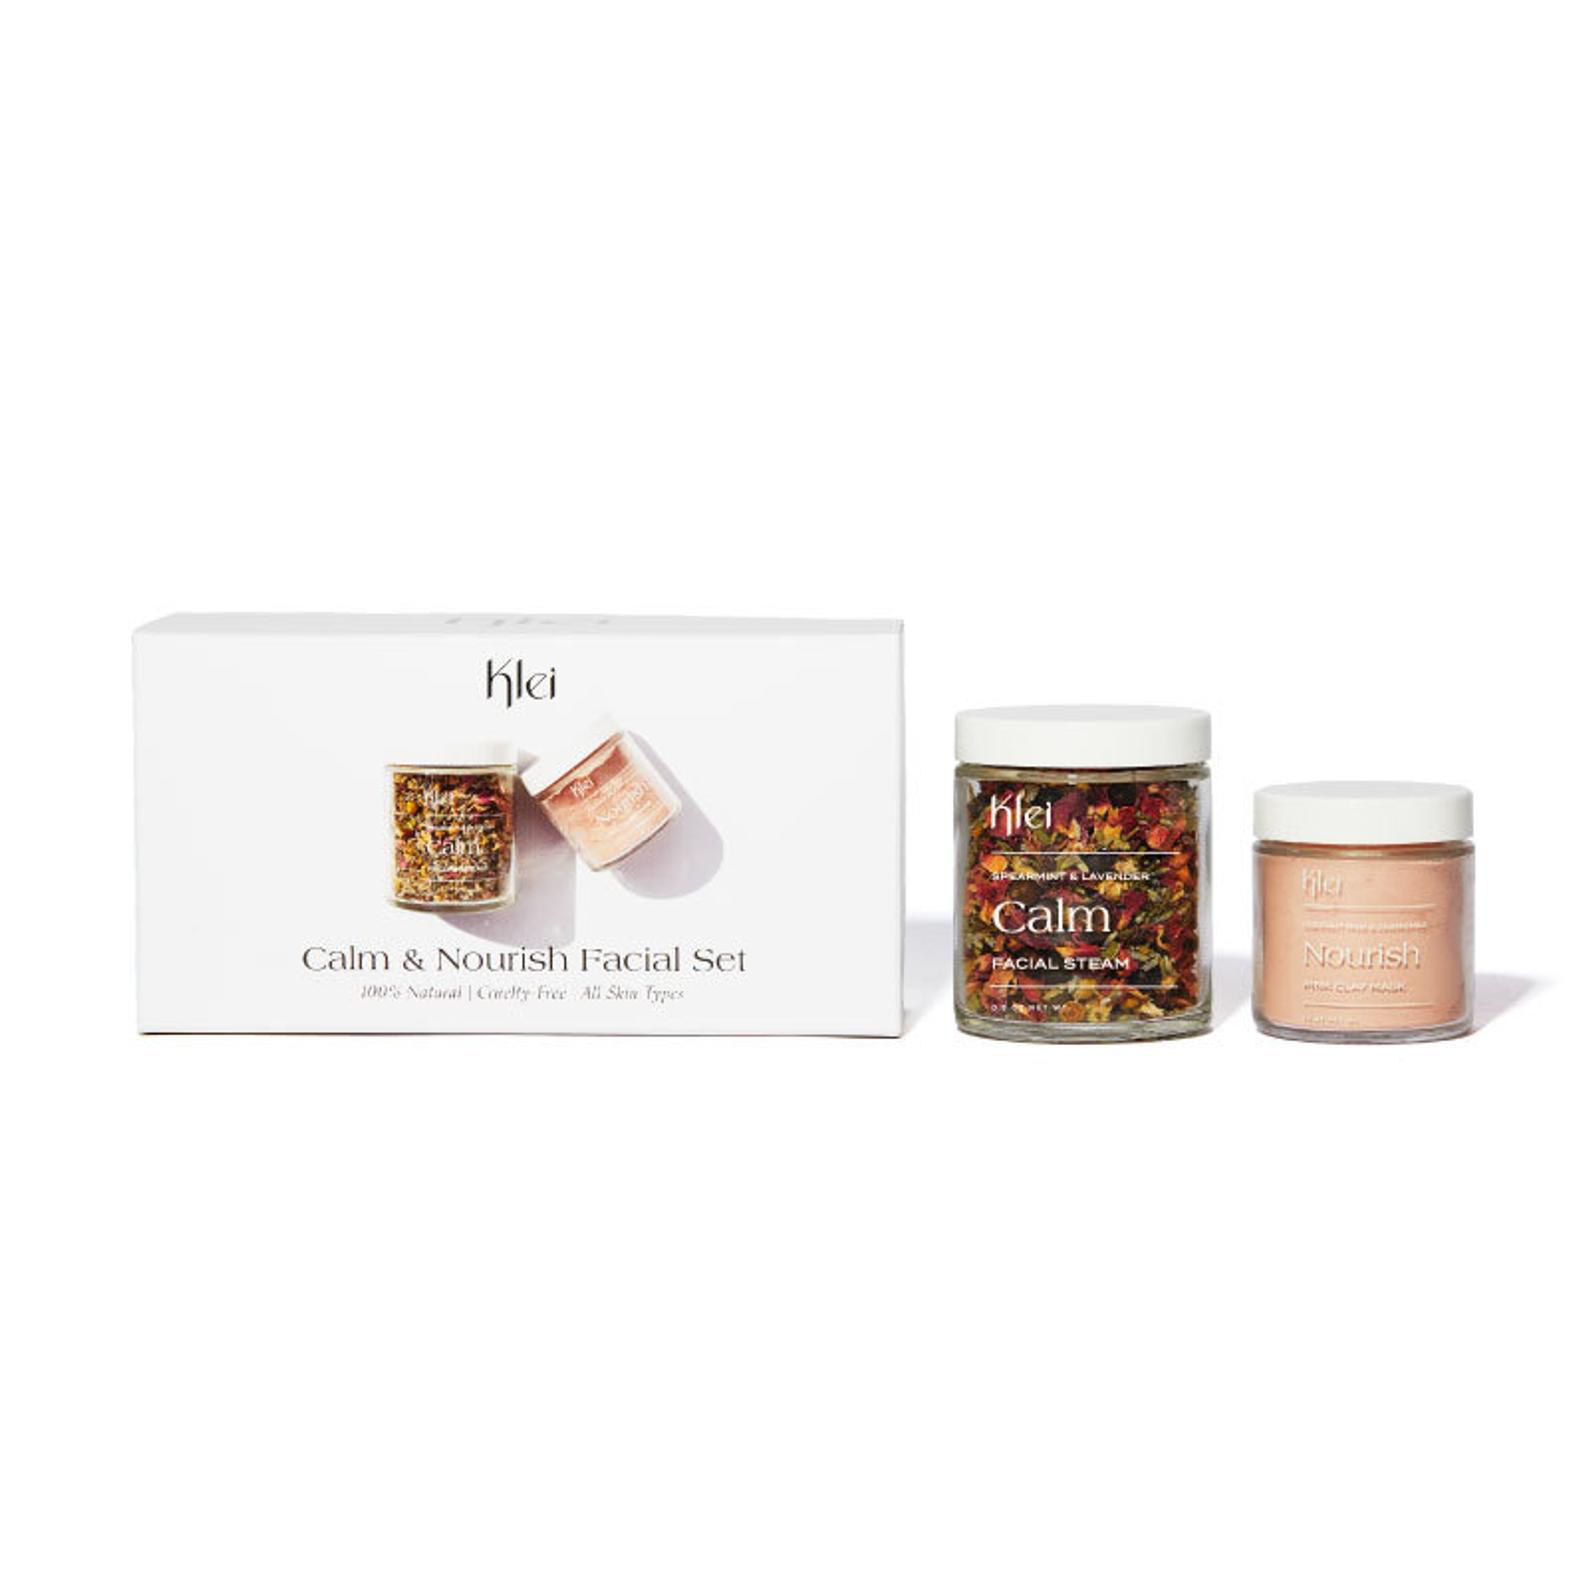 Klei Calm & Nourish Facial Set